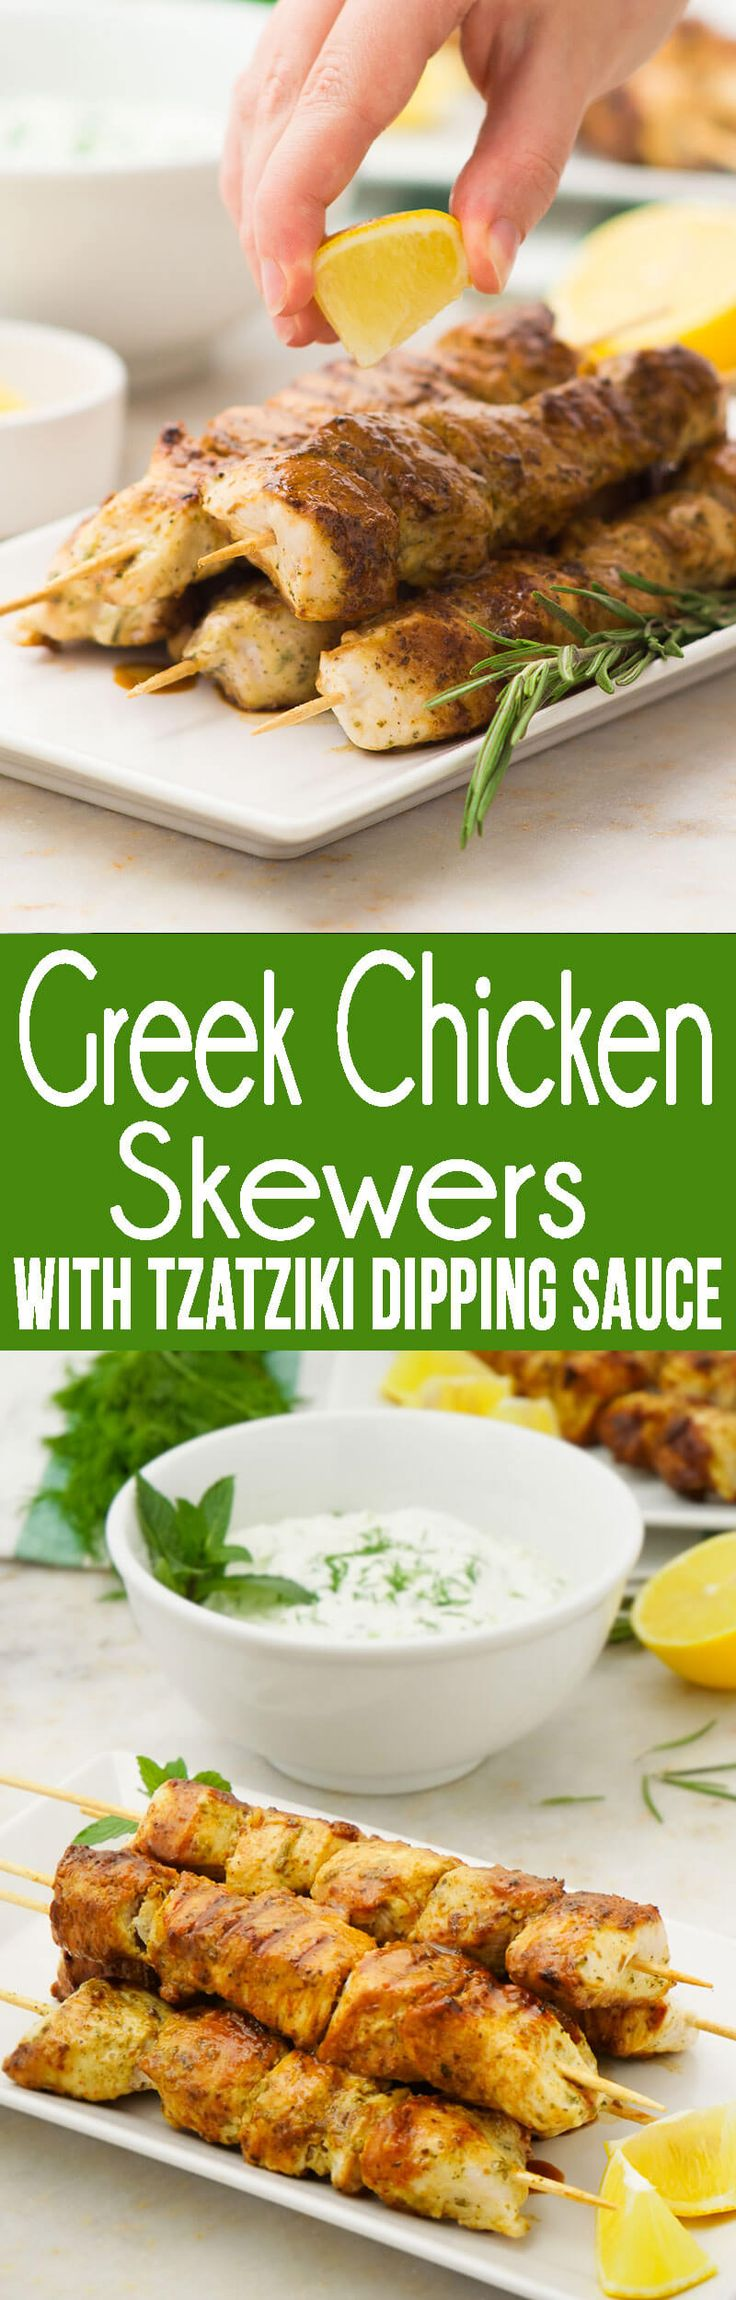 Greek Chicken Skewers with Tzatziki Dipping Sauce, we make these for lunch, weeknight dinners, all summer long, etc.  #chickendinner #chickenskewers #summerbbq #summerdinner #dippingsauce #chickendippingsauce